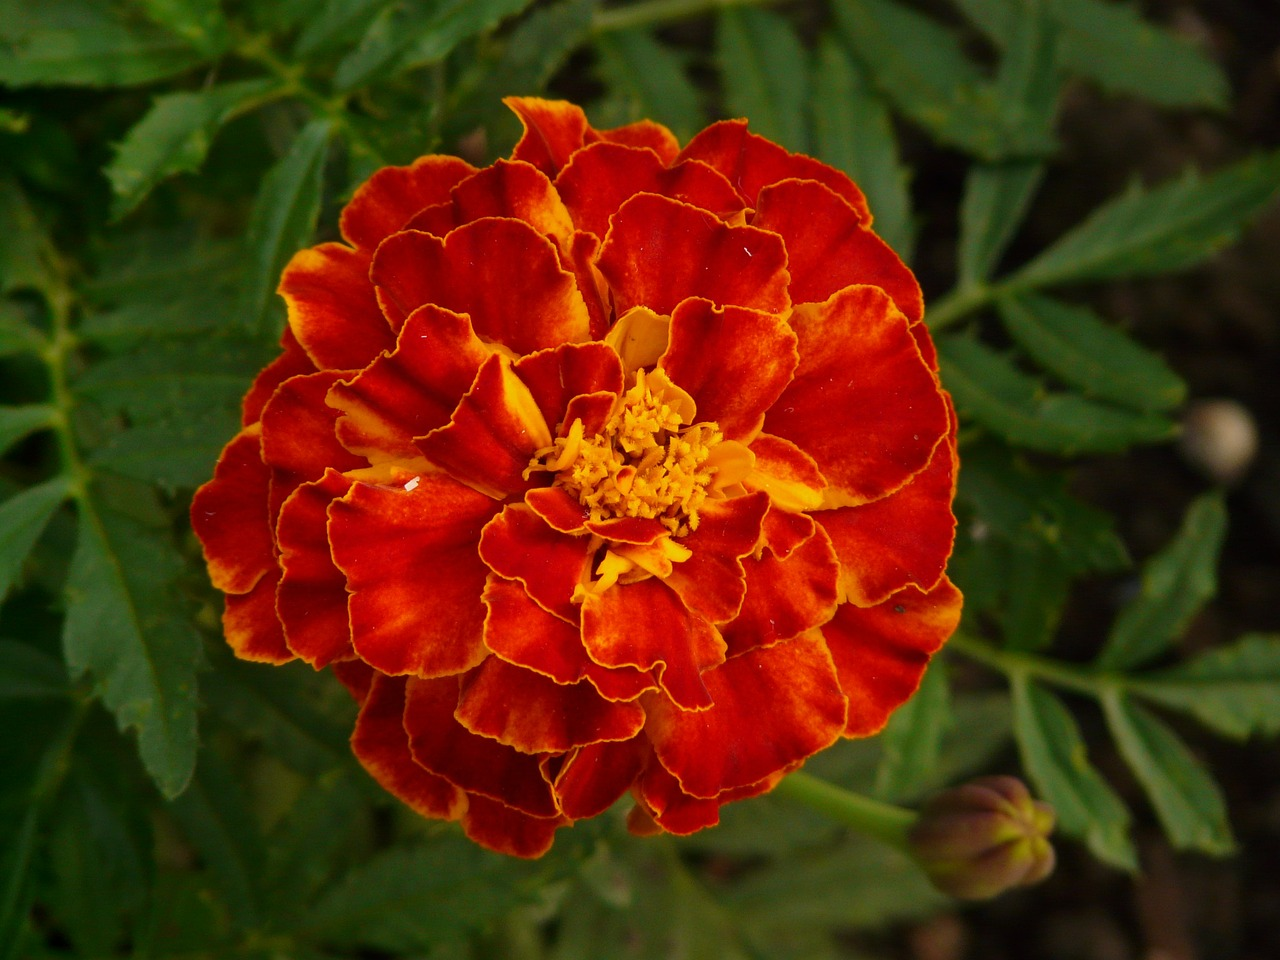 marigold,marigolds,turkish carnation,dead flower,summer flower,balcony flower,balcony plant,plant,flora,flower,blossom,bloom,orange,red,beautiful,colorful,free pictures, free photos, free images, royalty free, free illustrations, public domain